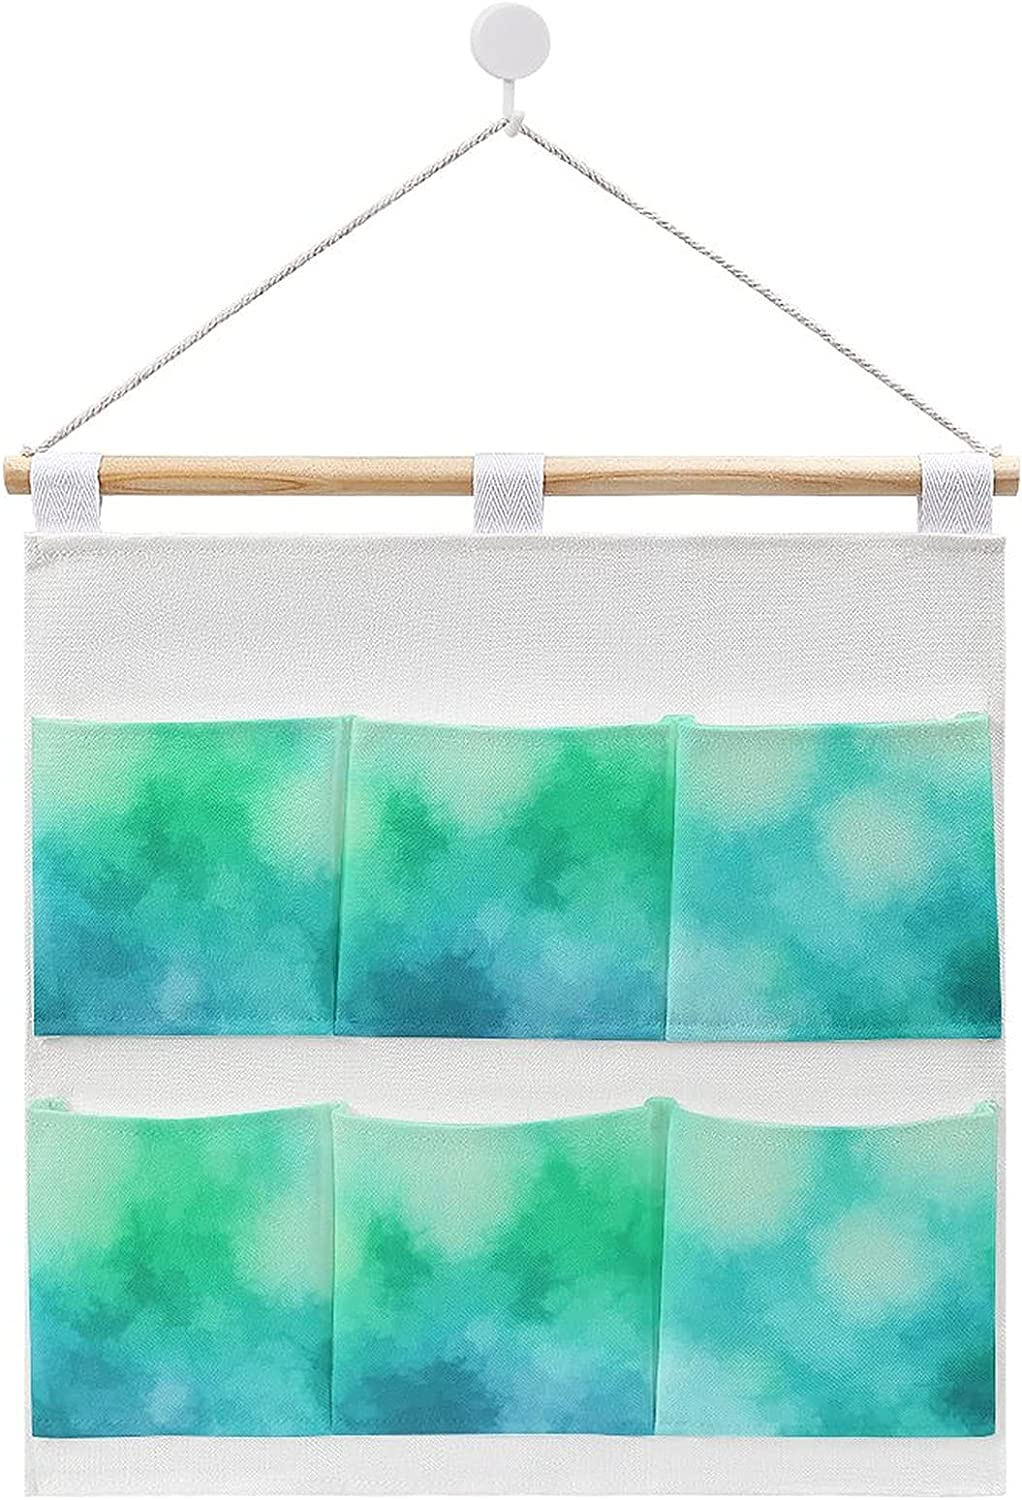 Design Indianapolis Mall Colorful Abstract Texture Hanging and linen Mail order storag cotton